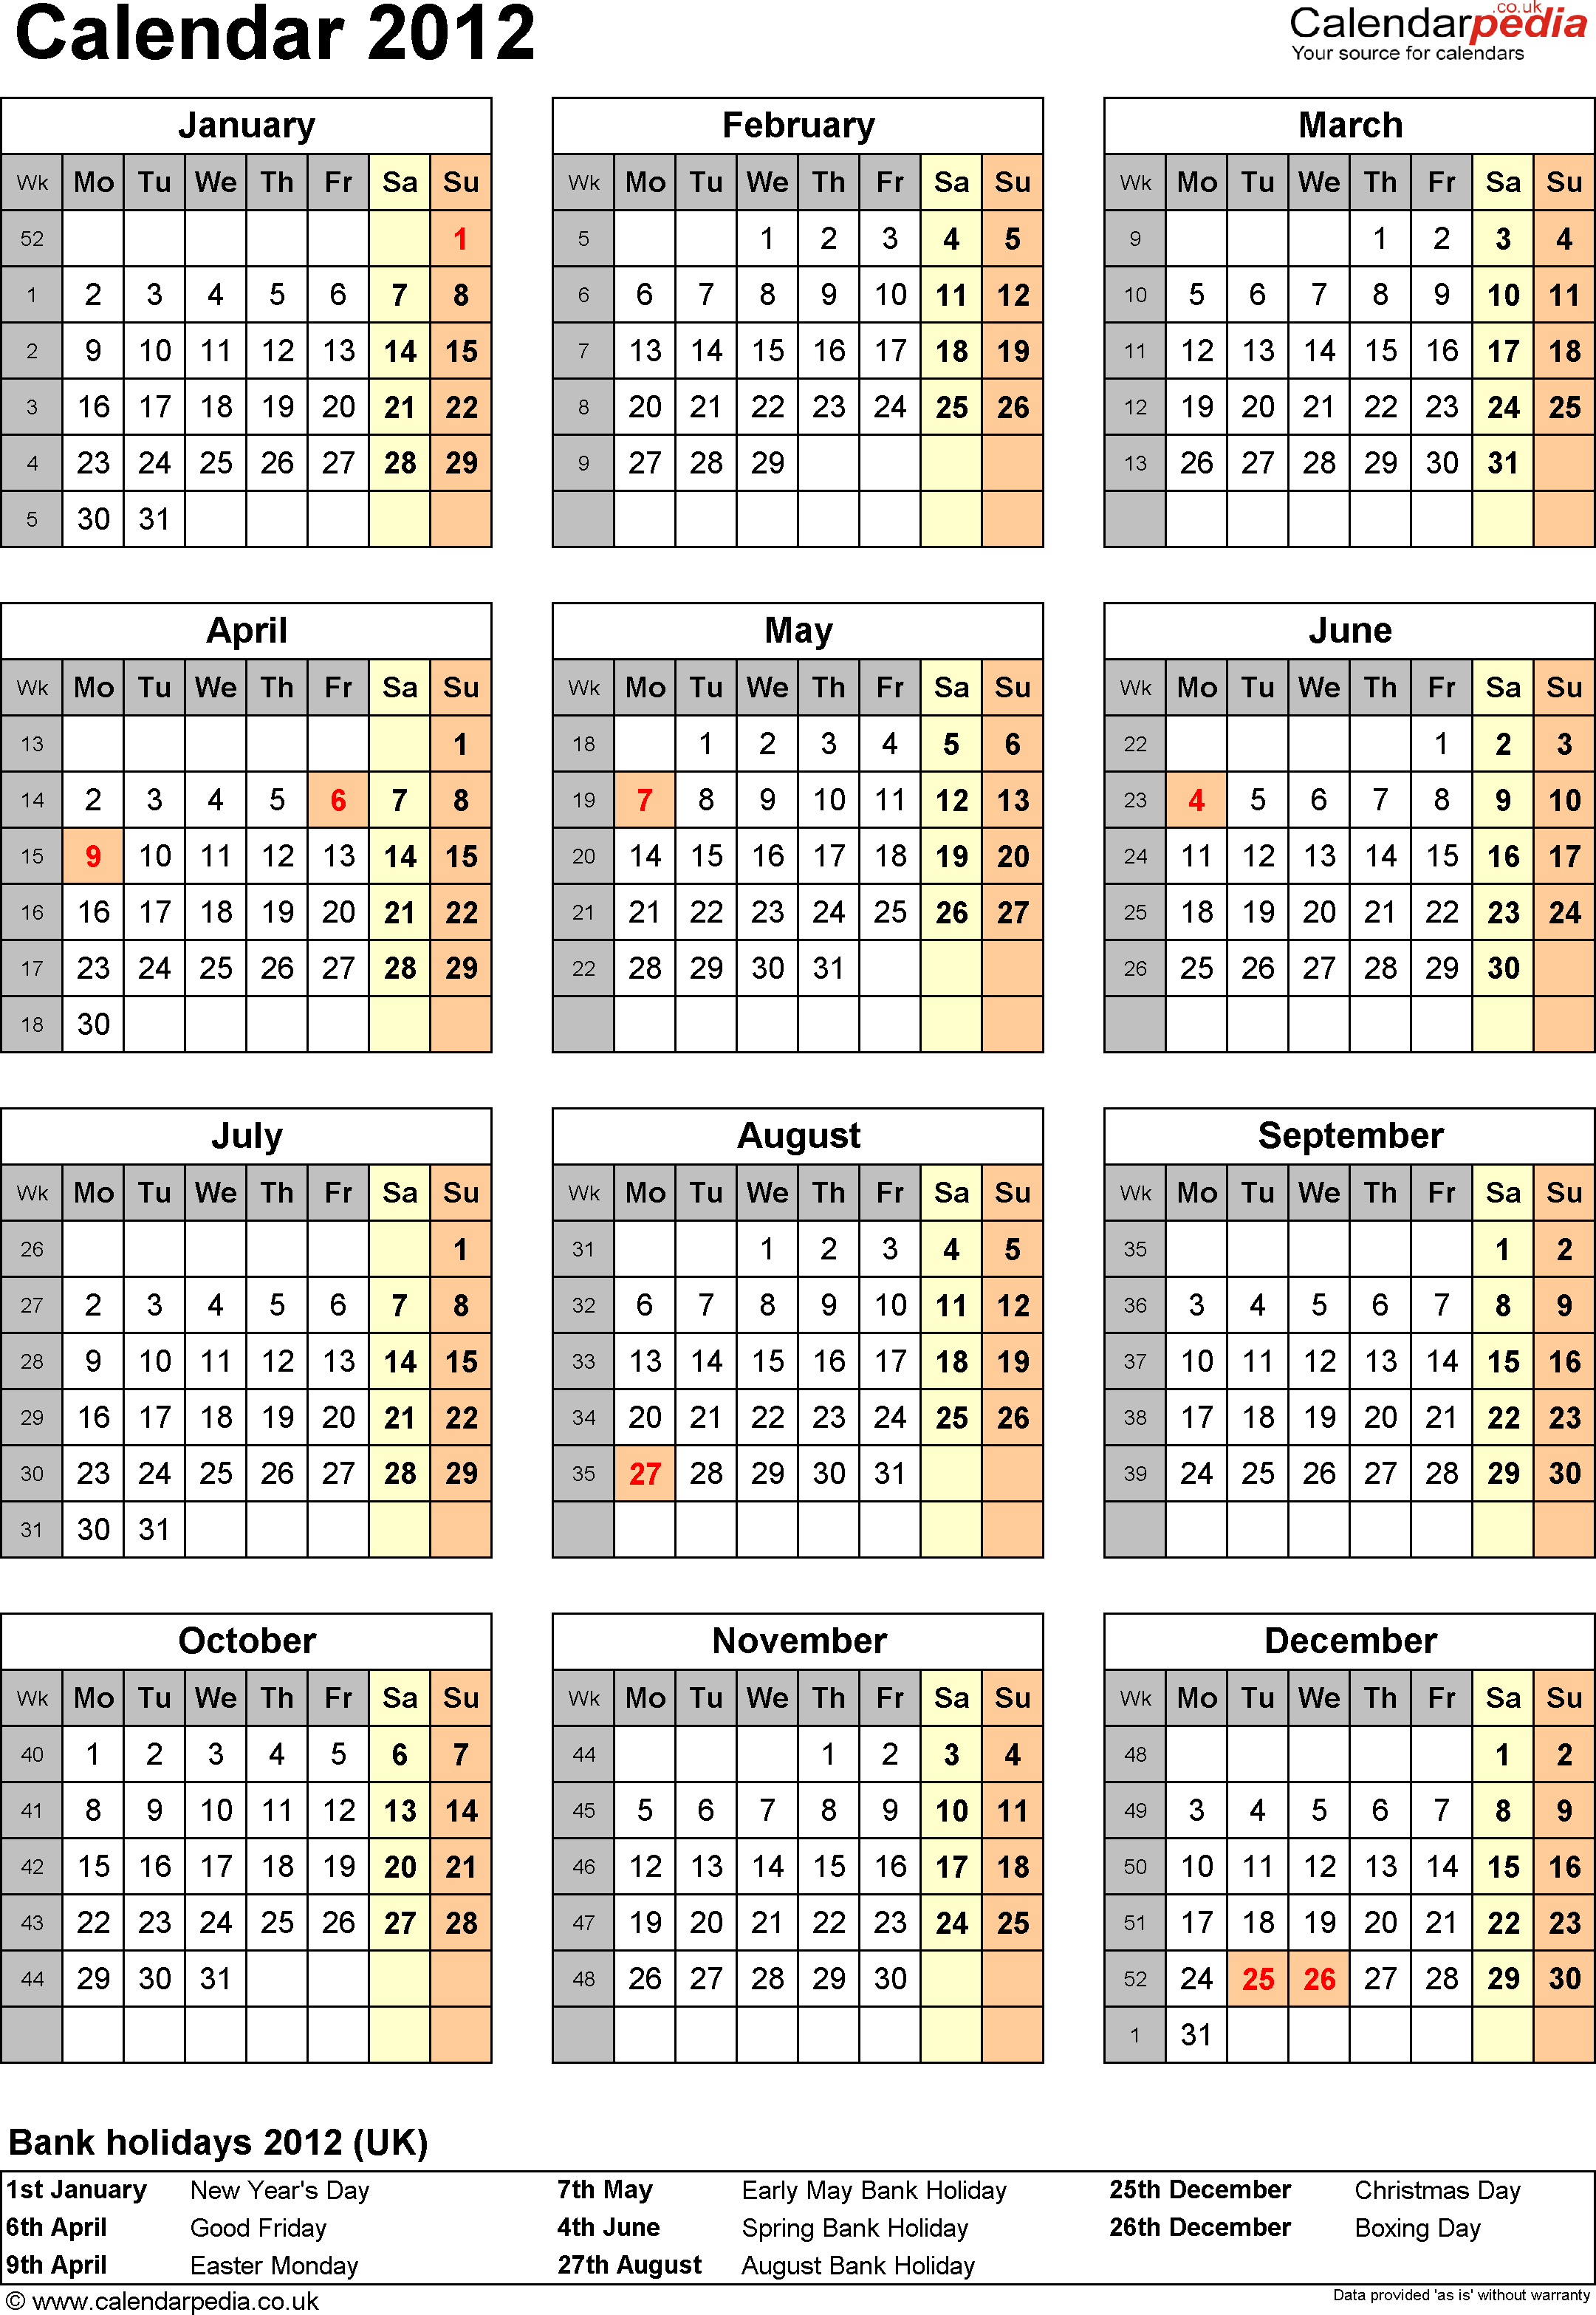 Download calendar 2012 as PNG file